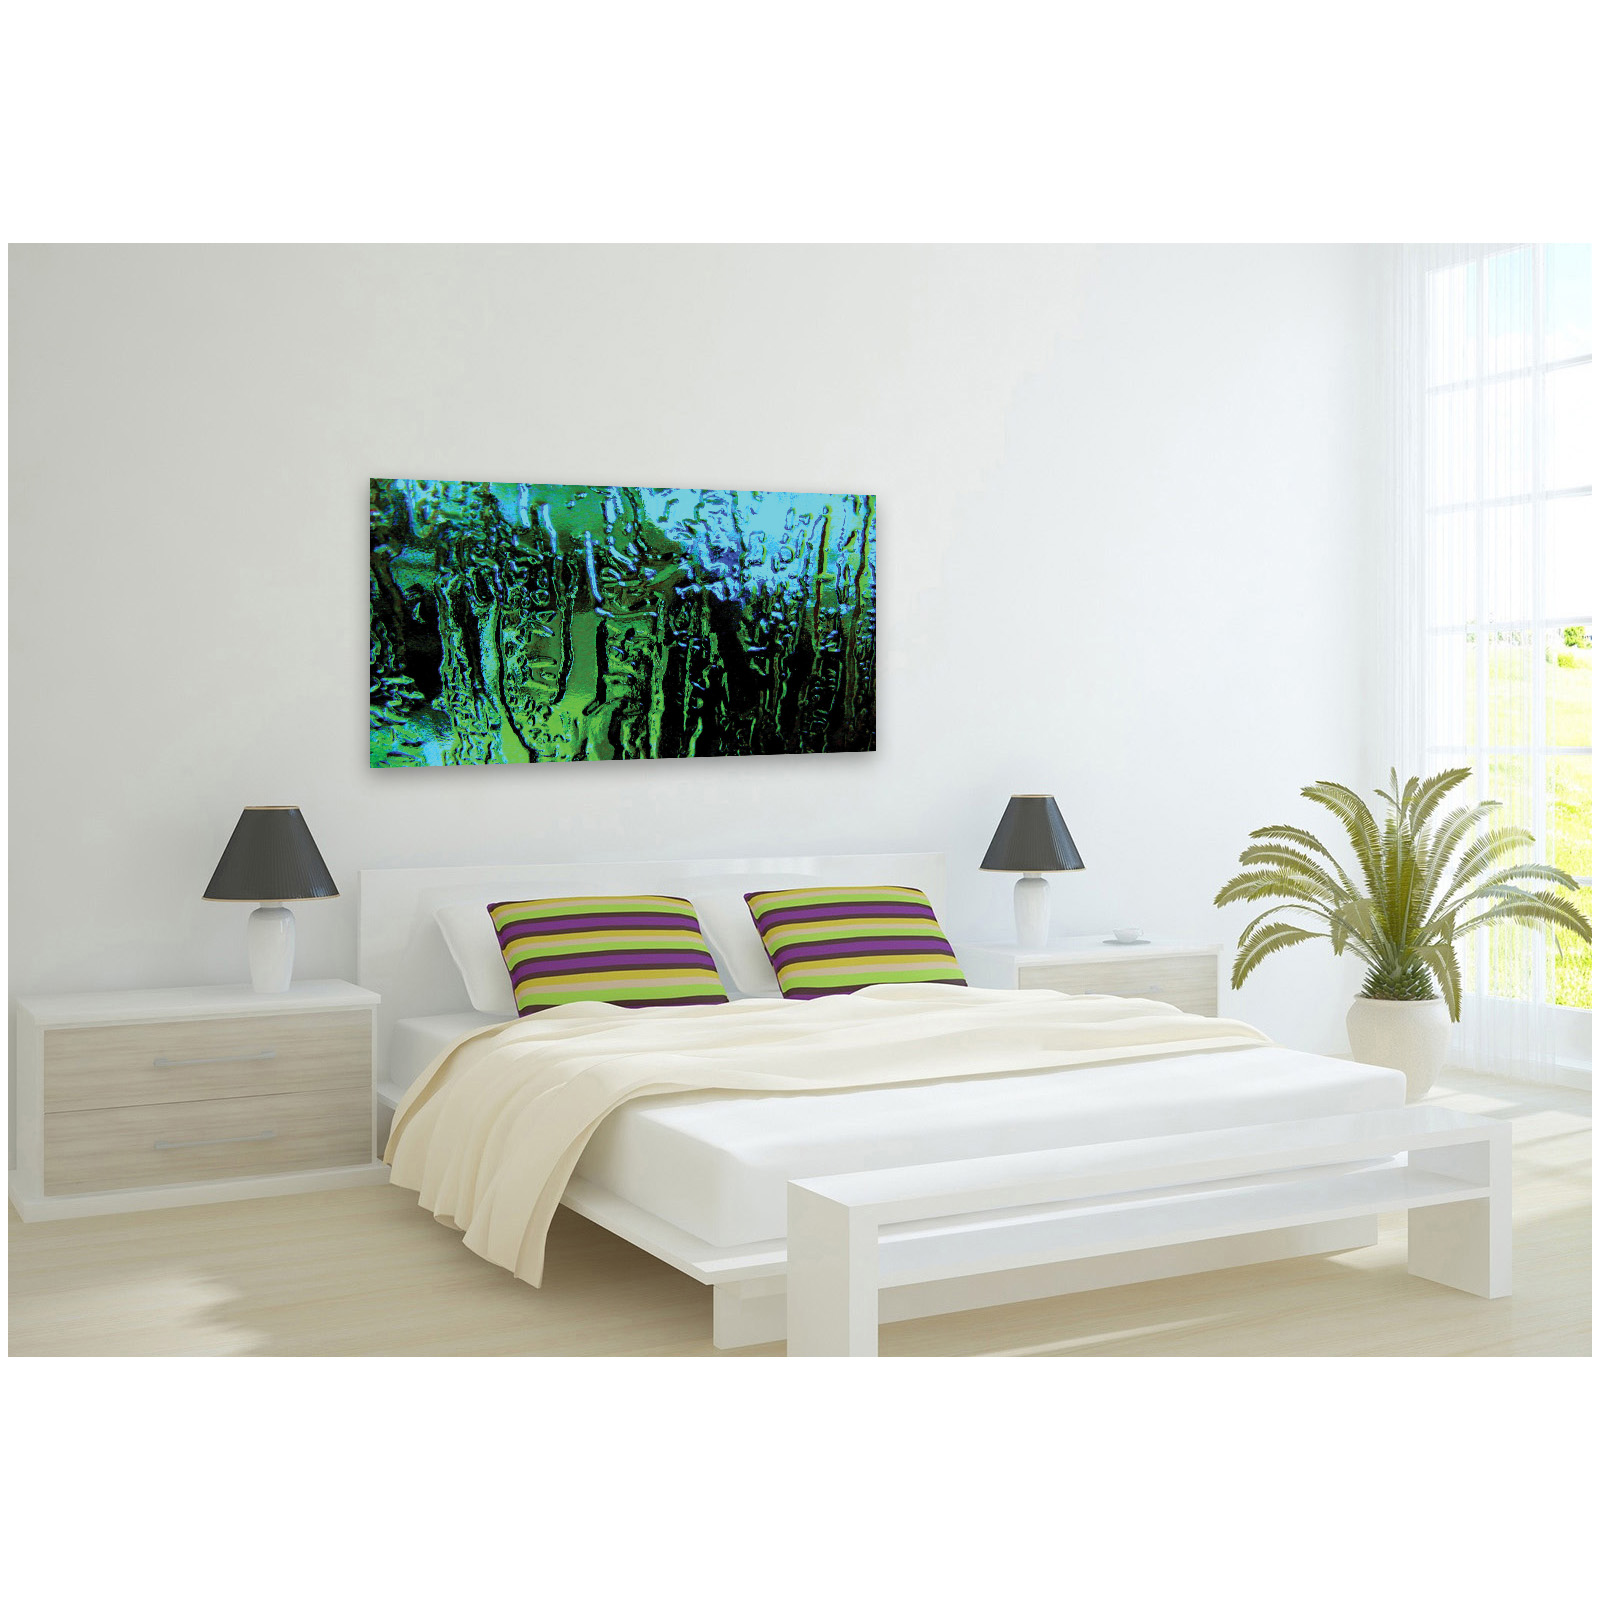 Extra large green glass modern abstract acrylic glass wall for Large glass walls